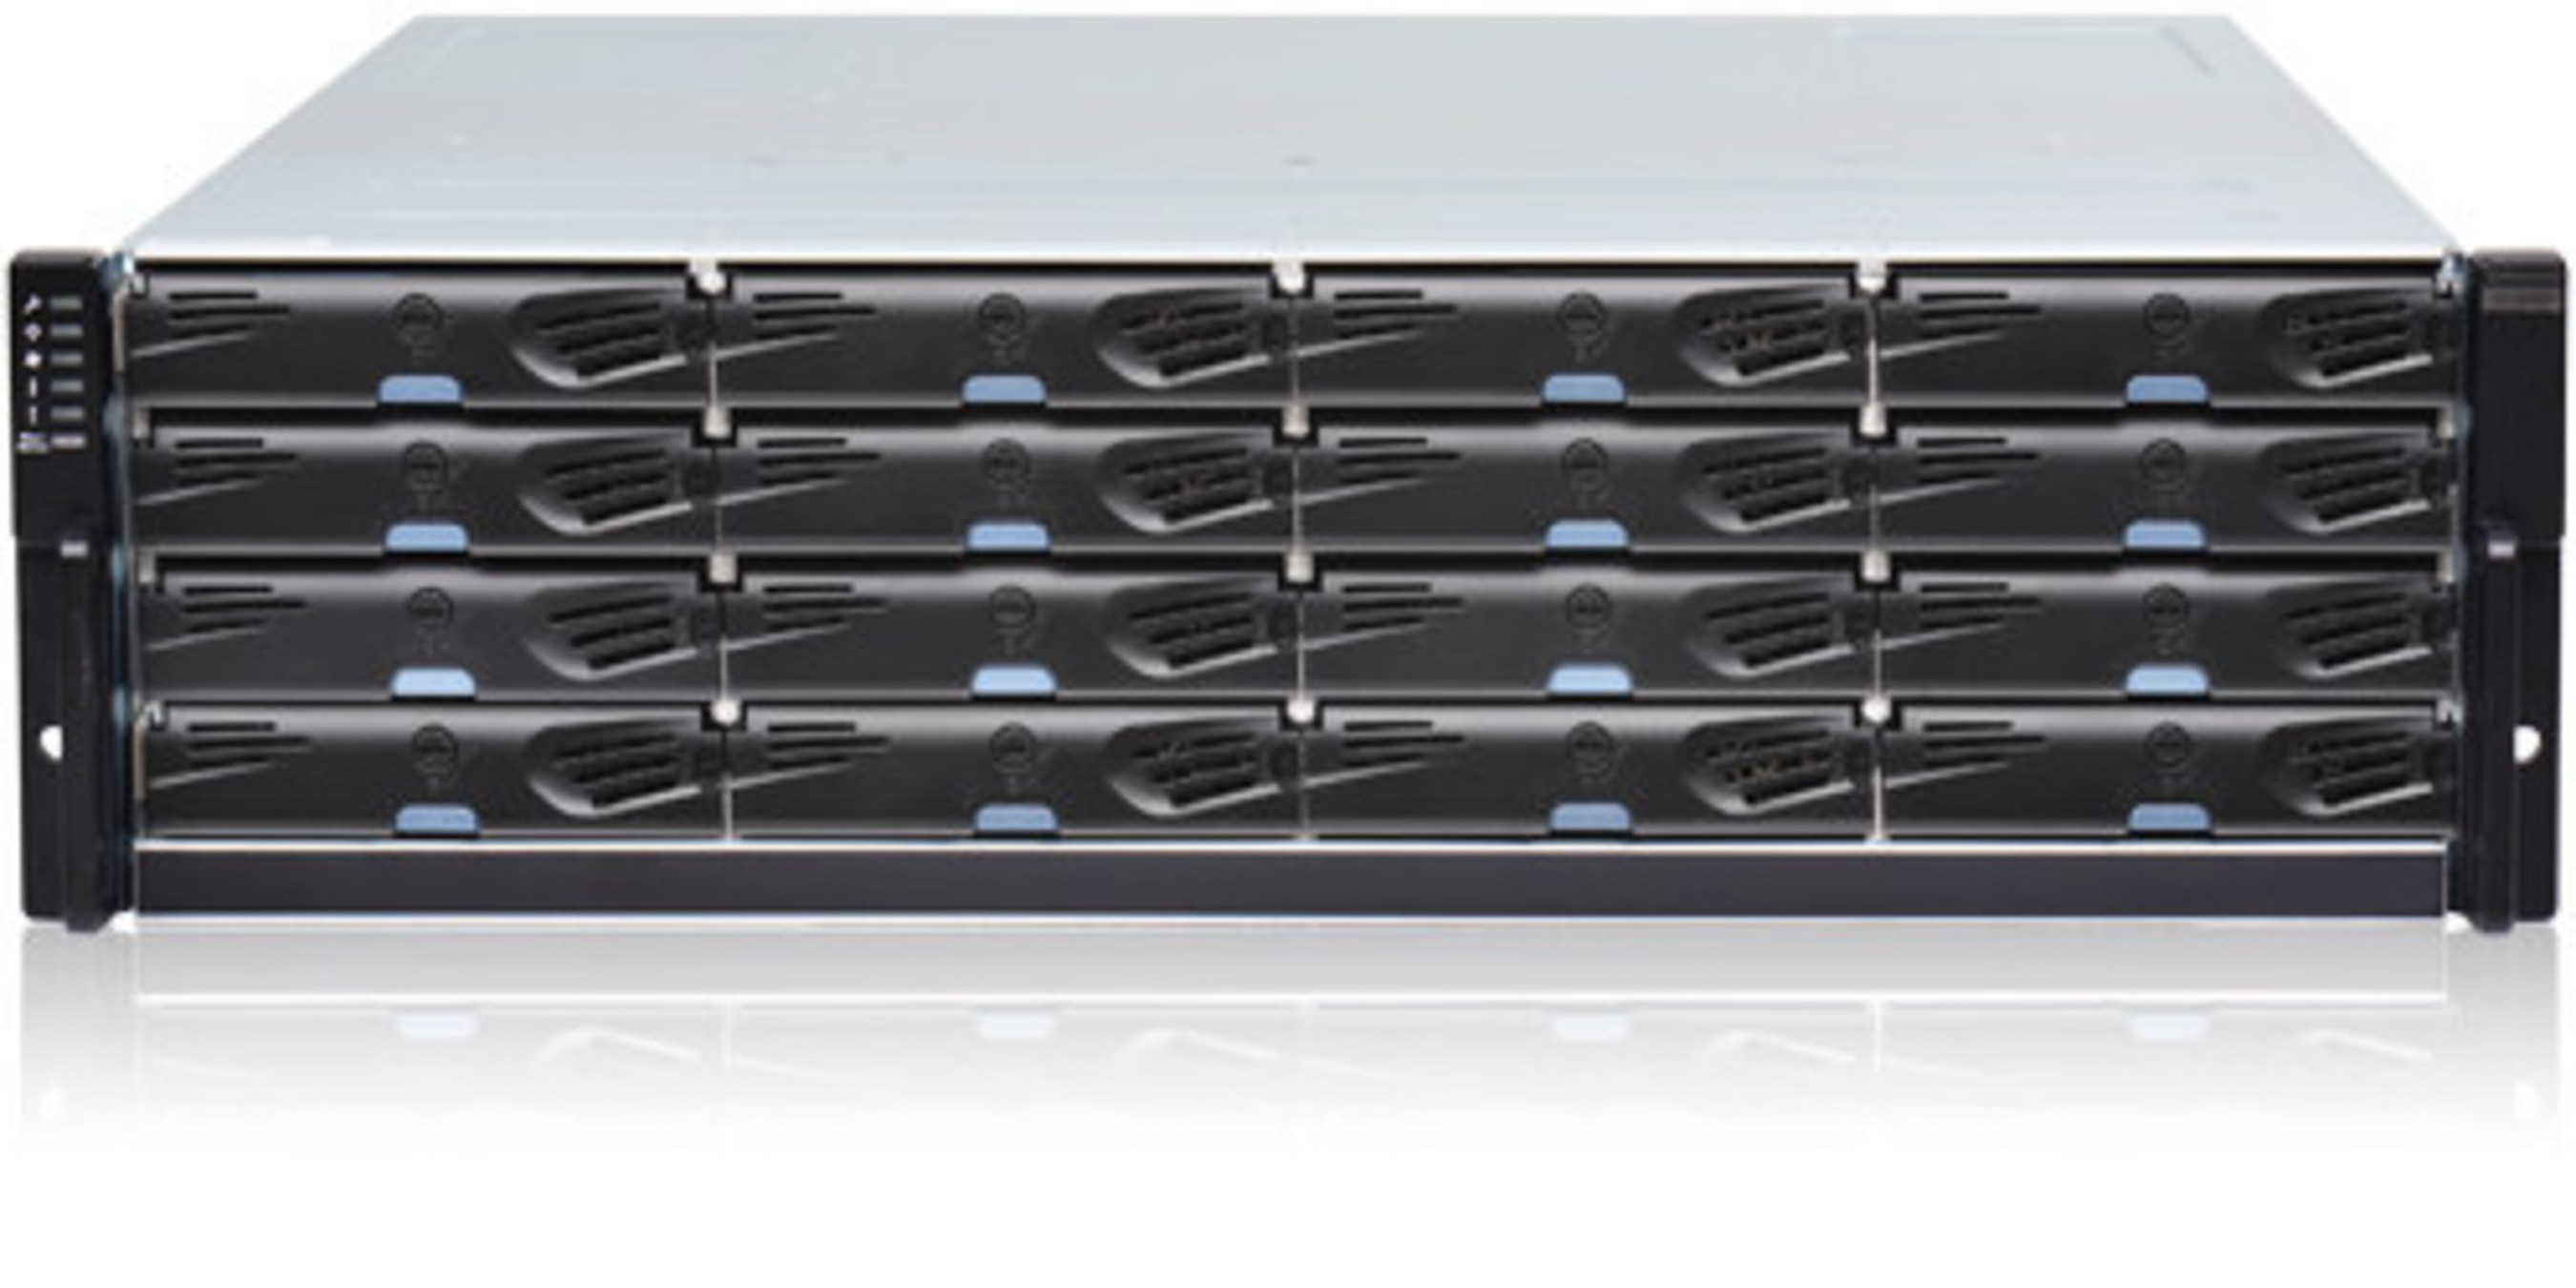 Infortrend Launches EonStor DS 4000 RAID Systems